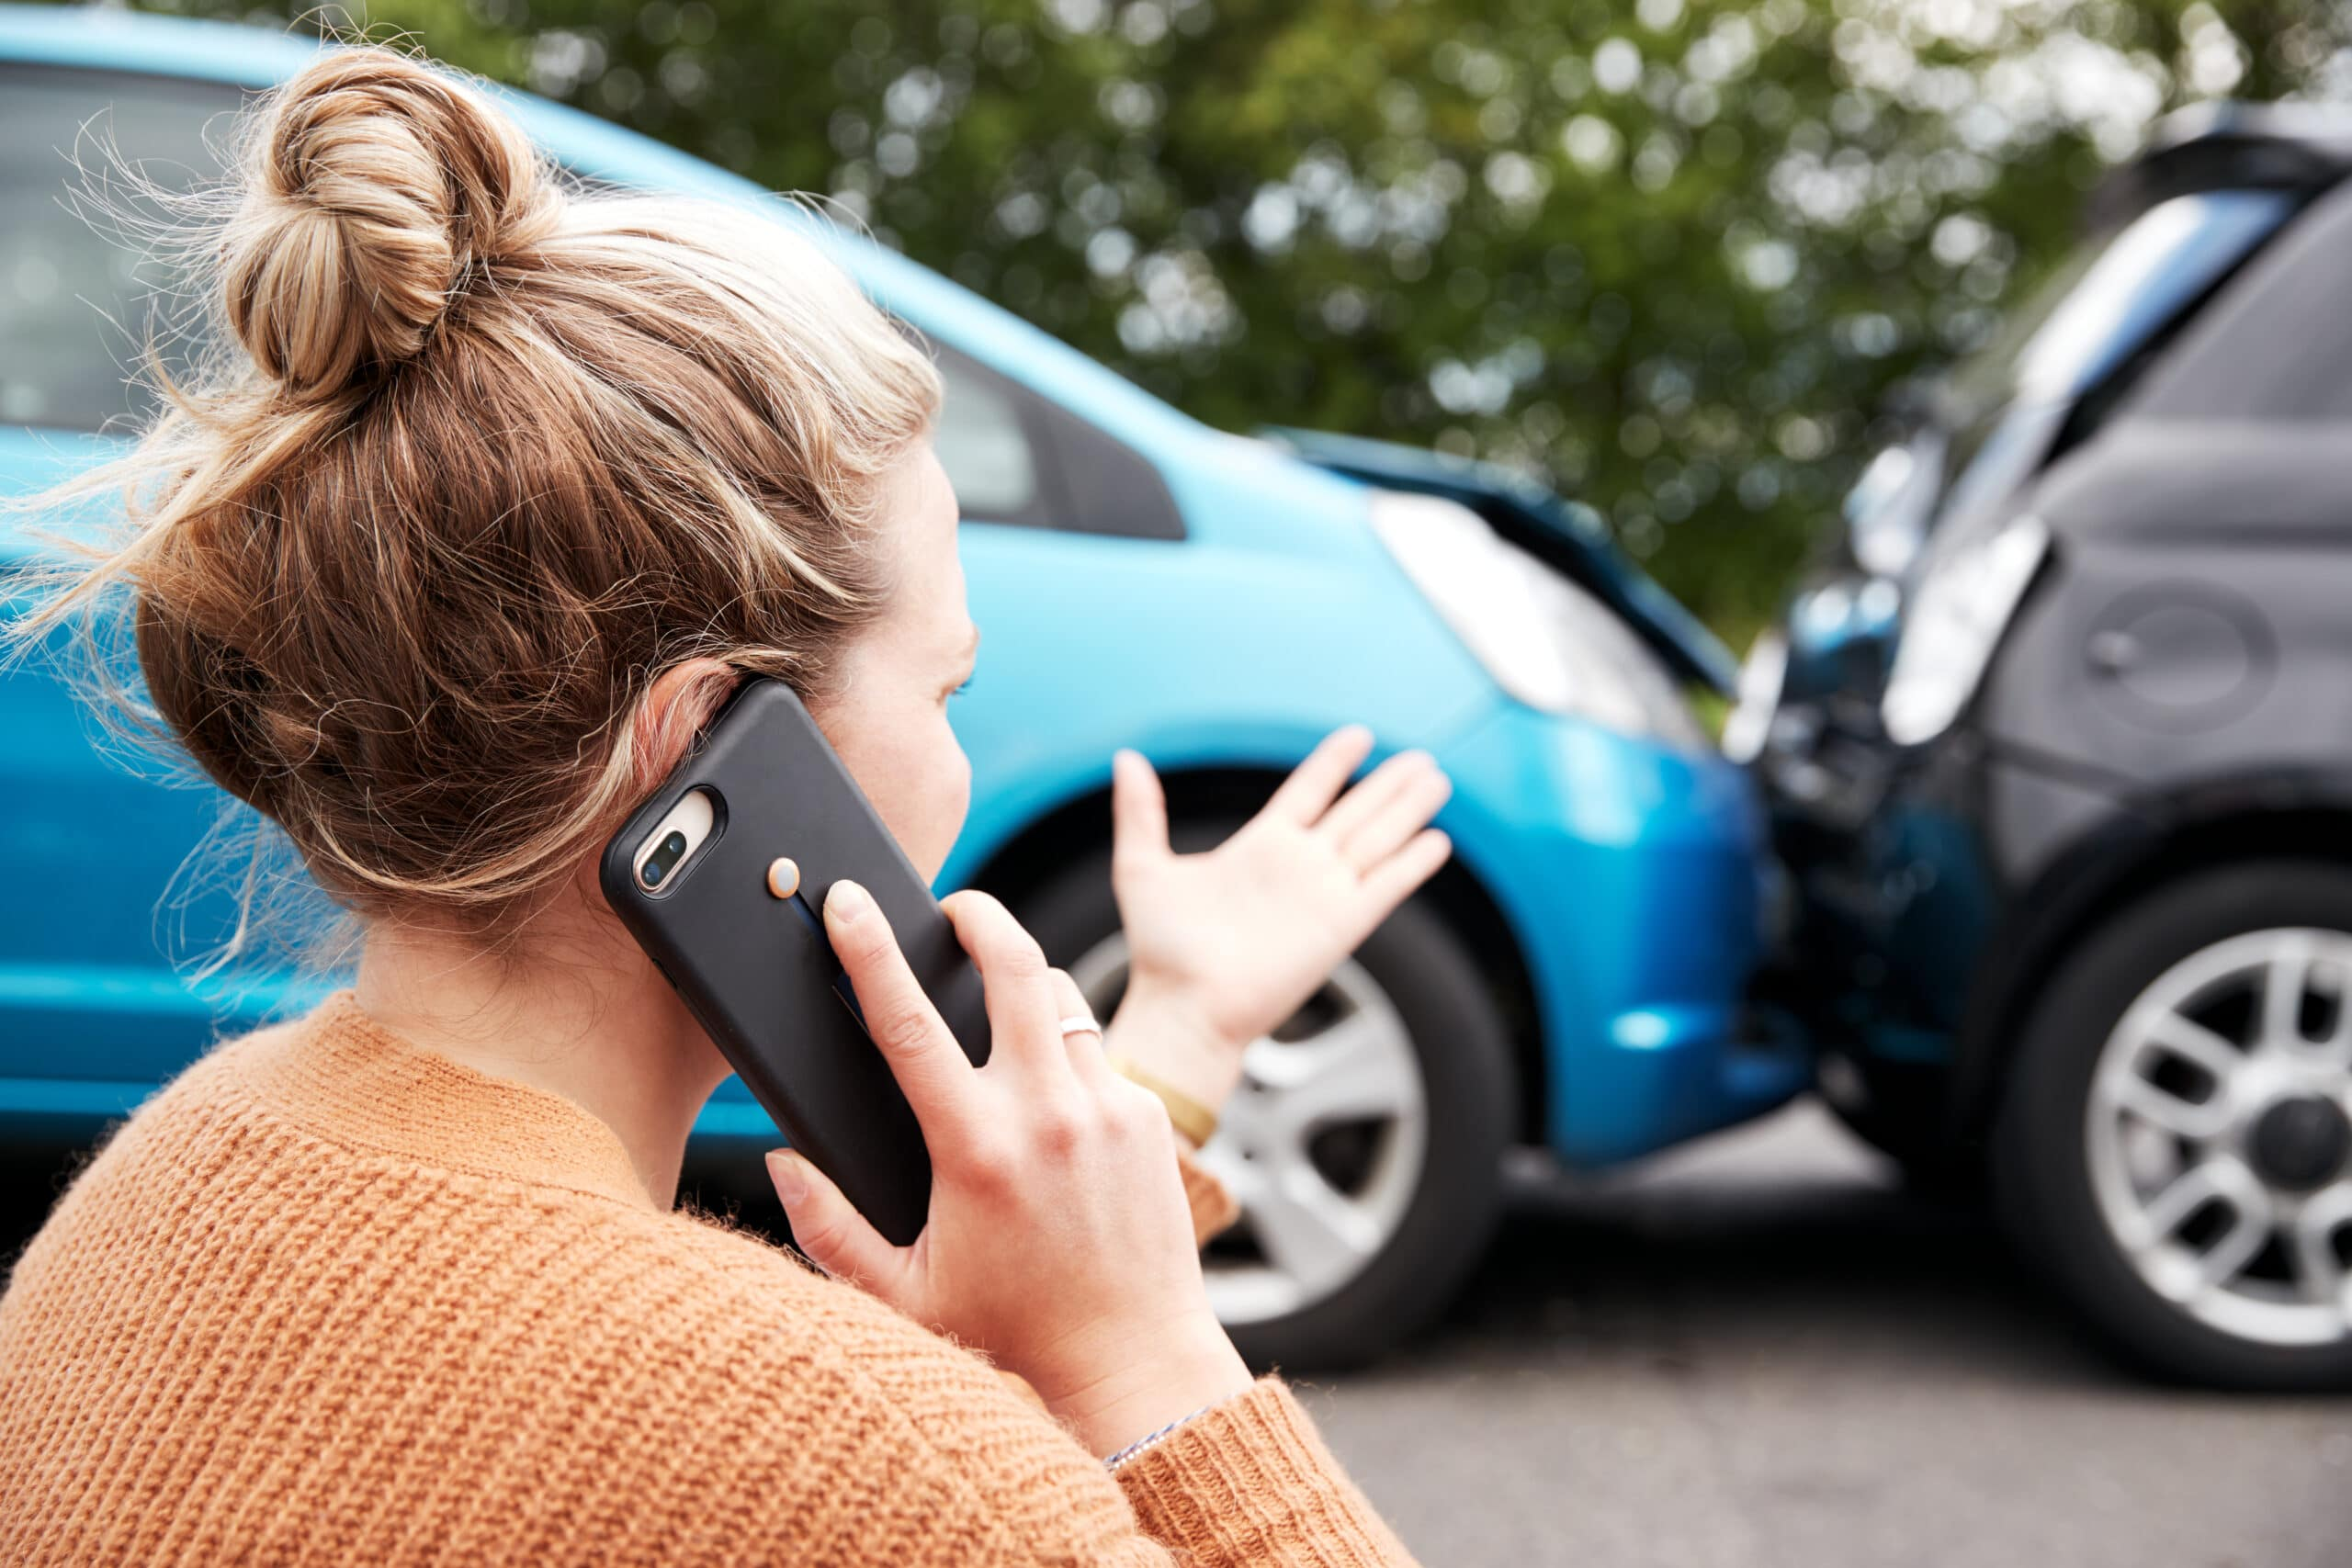 Female Motorist Involved In Car Accident Calling Insurance Company to Make a Claim